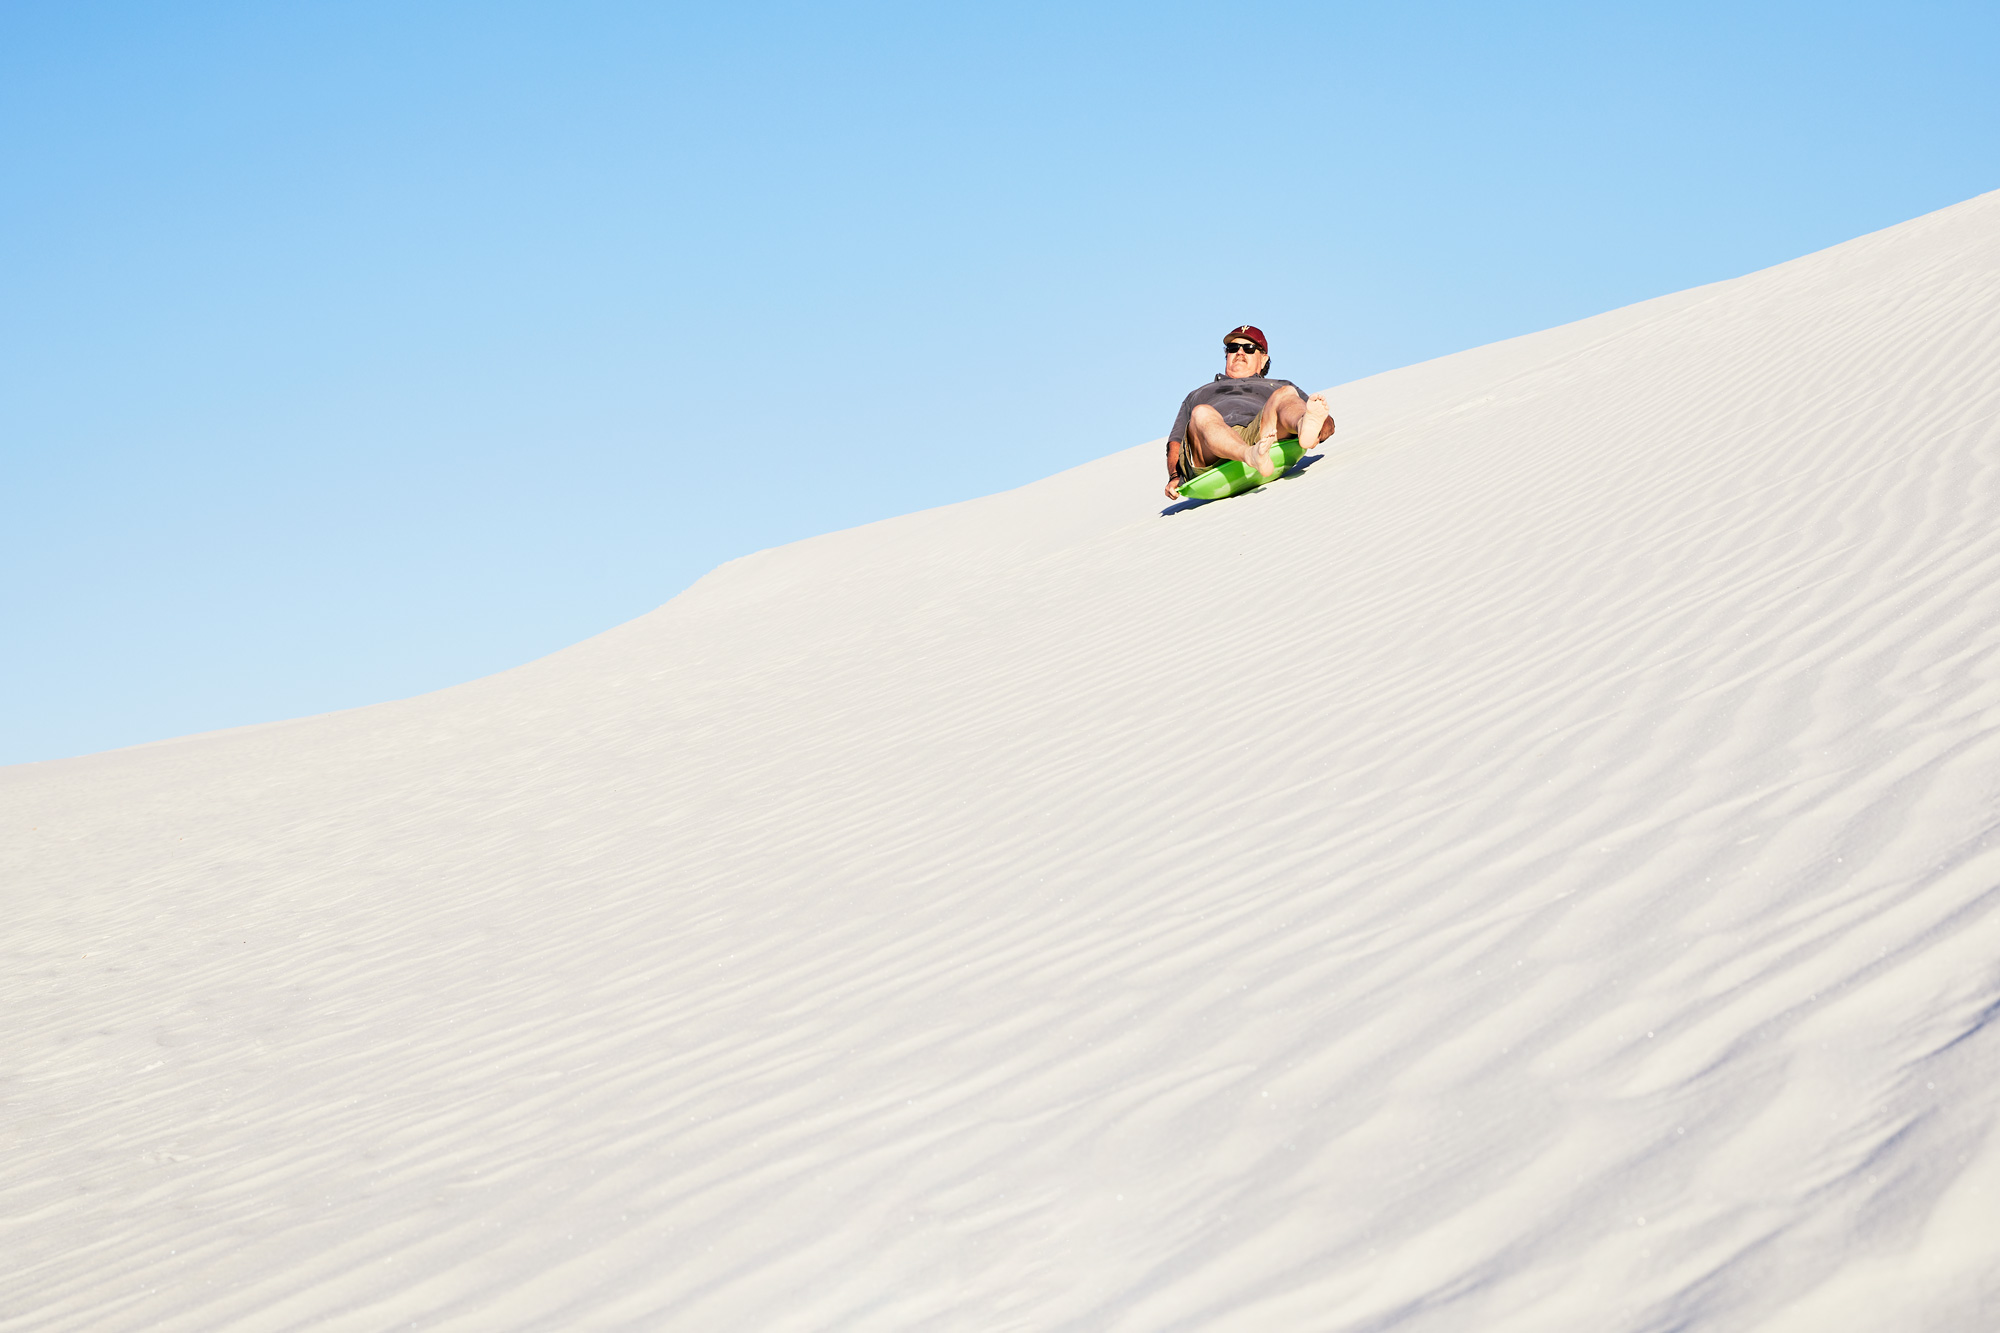 Dad Hits The Road - White Sands National Monument, NM - Stephen Denton Photography -  Los Angeles, CA / Phoenix, AZ Commercial Photographer